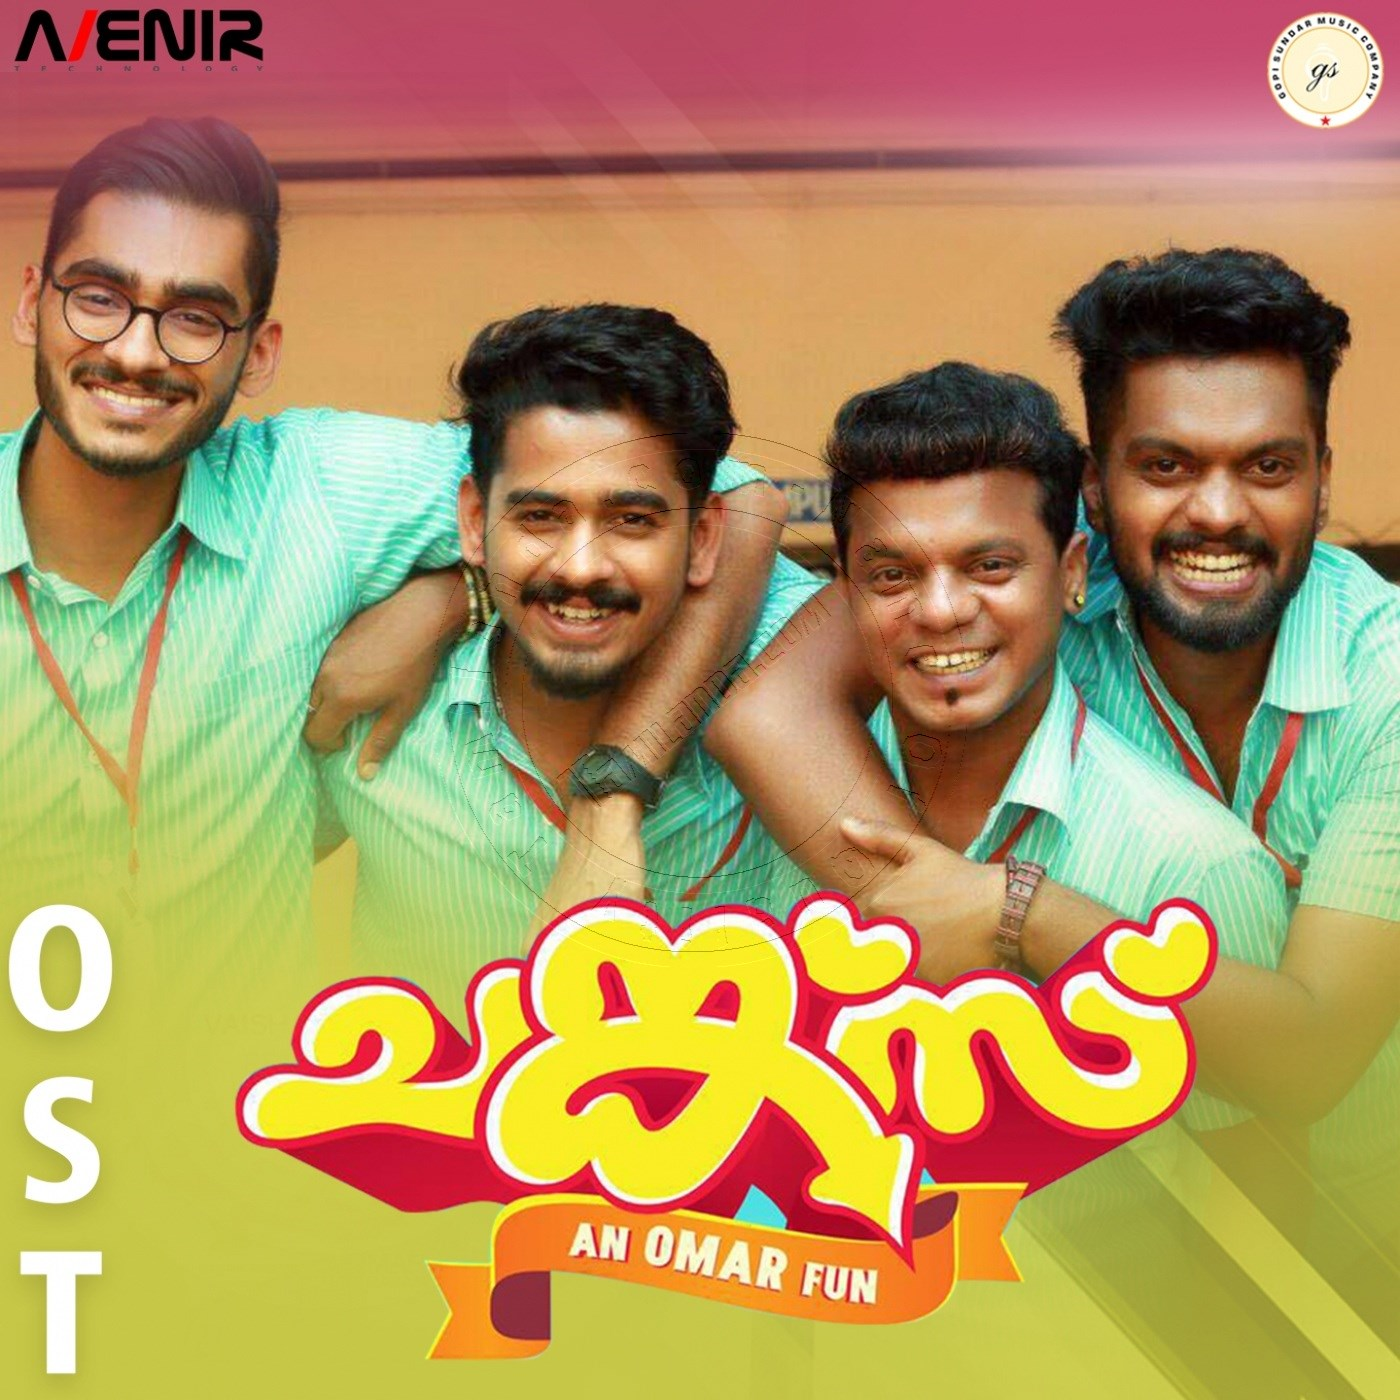 Chunkzz 16 BIT FLAC Songs